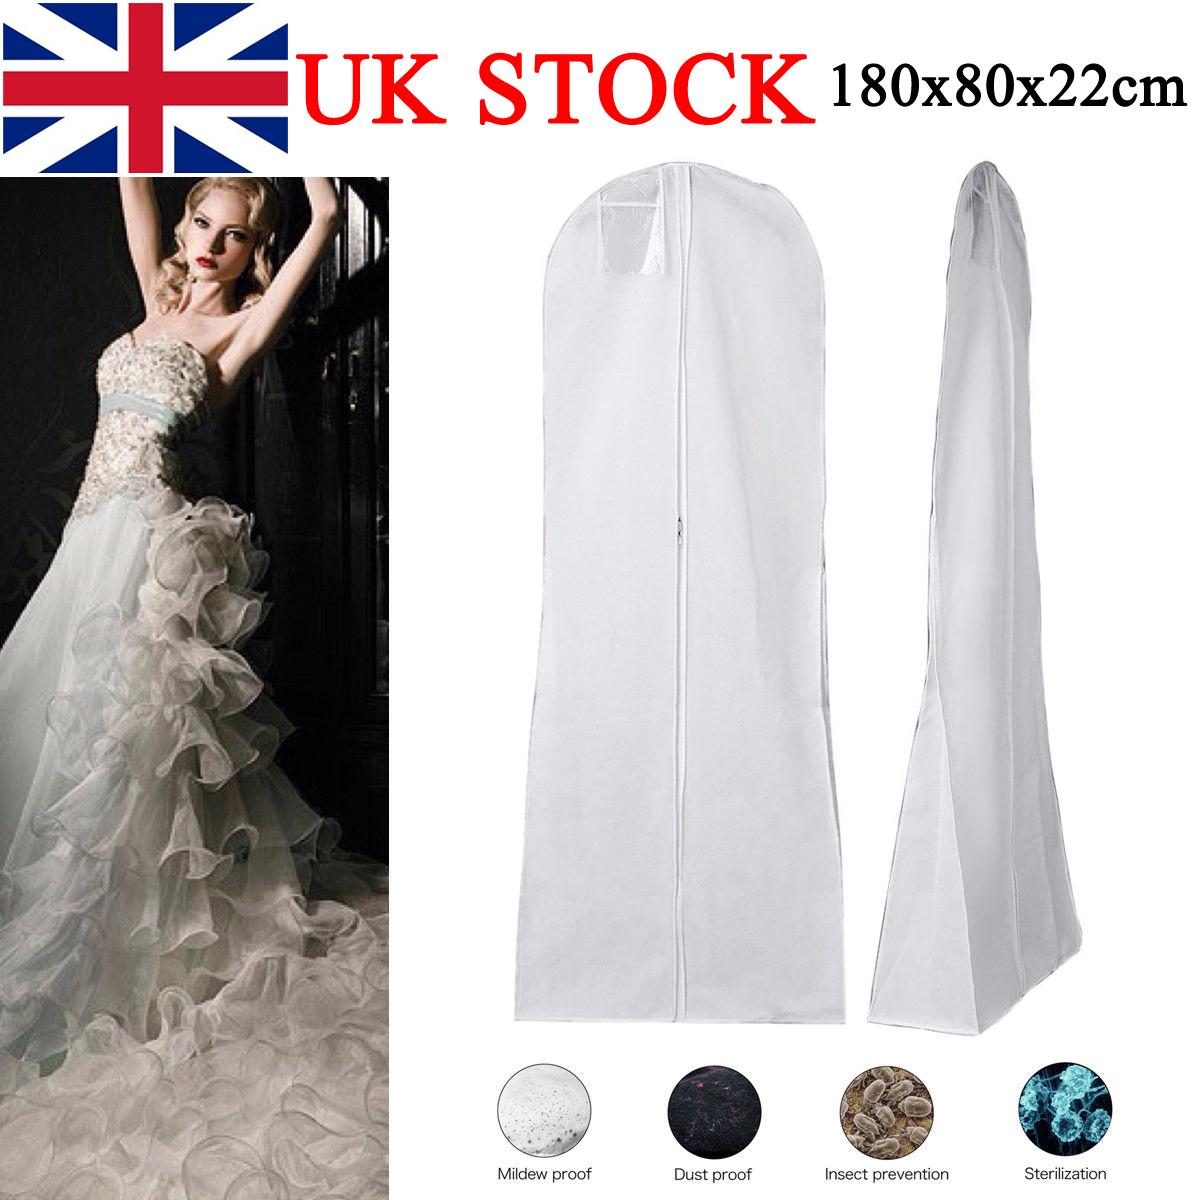 c112a207df54 Breathable Long Dress Zip Cover Bag For Bridal Wedding Gown Prom ...